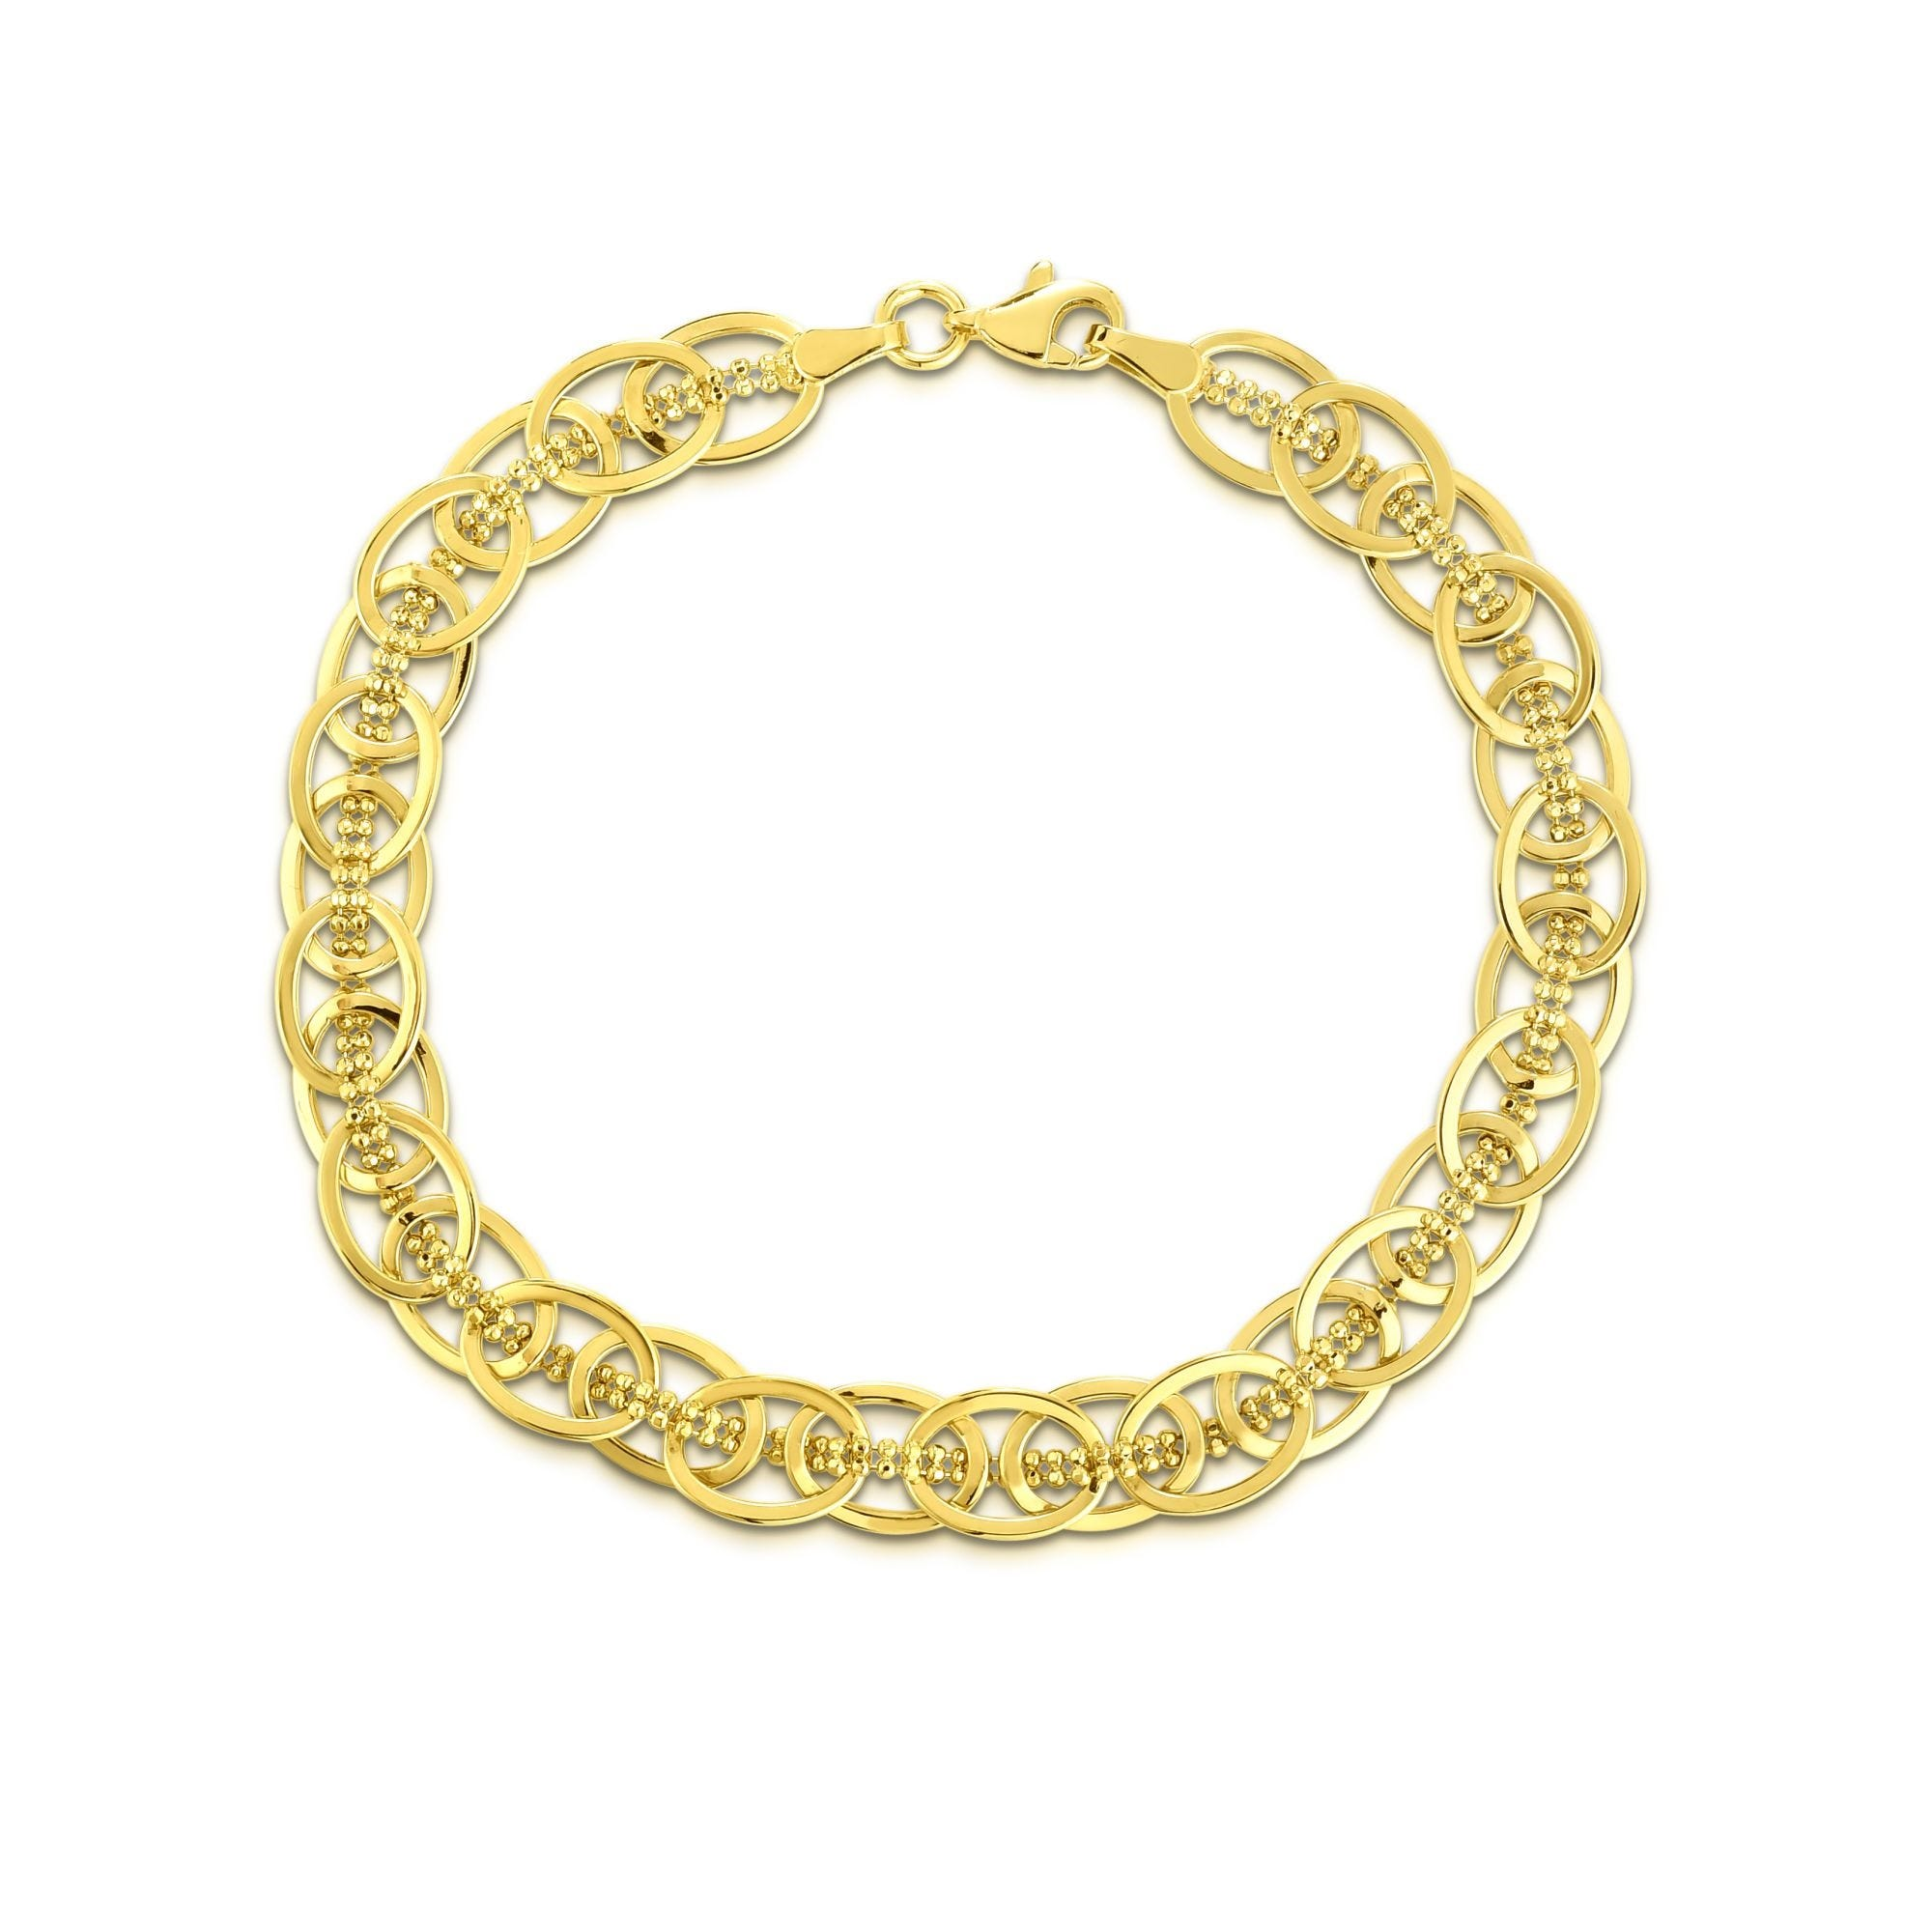 Polished Fancy Oval Link Bracelet in 14k Yellow